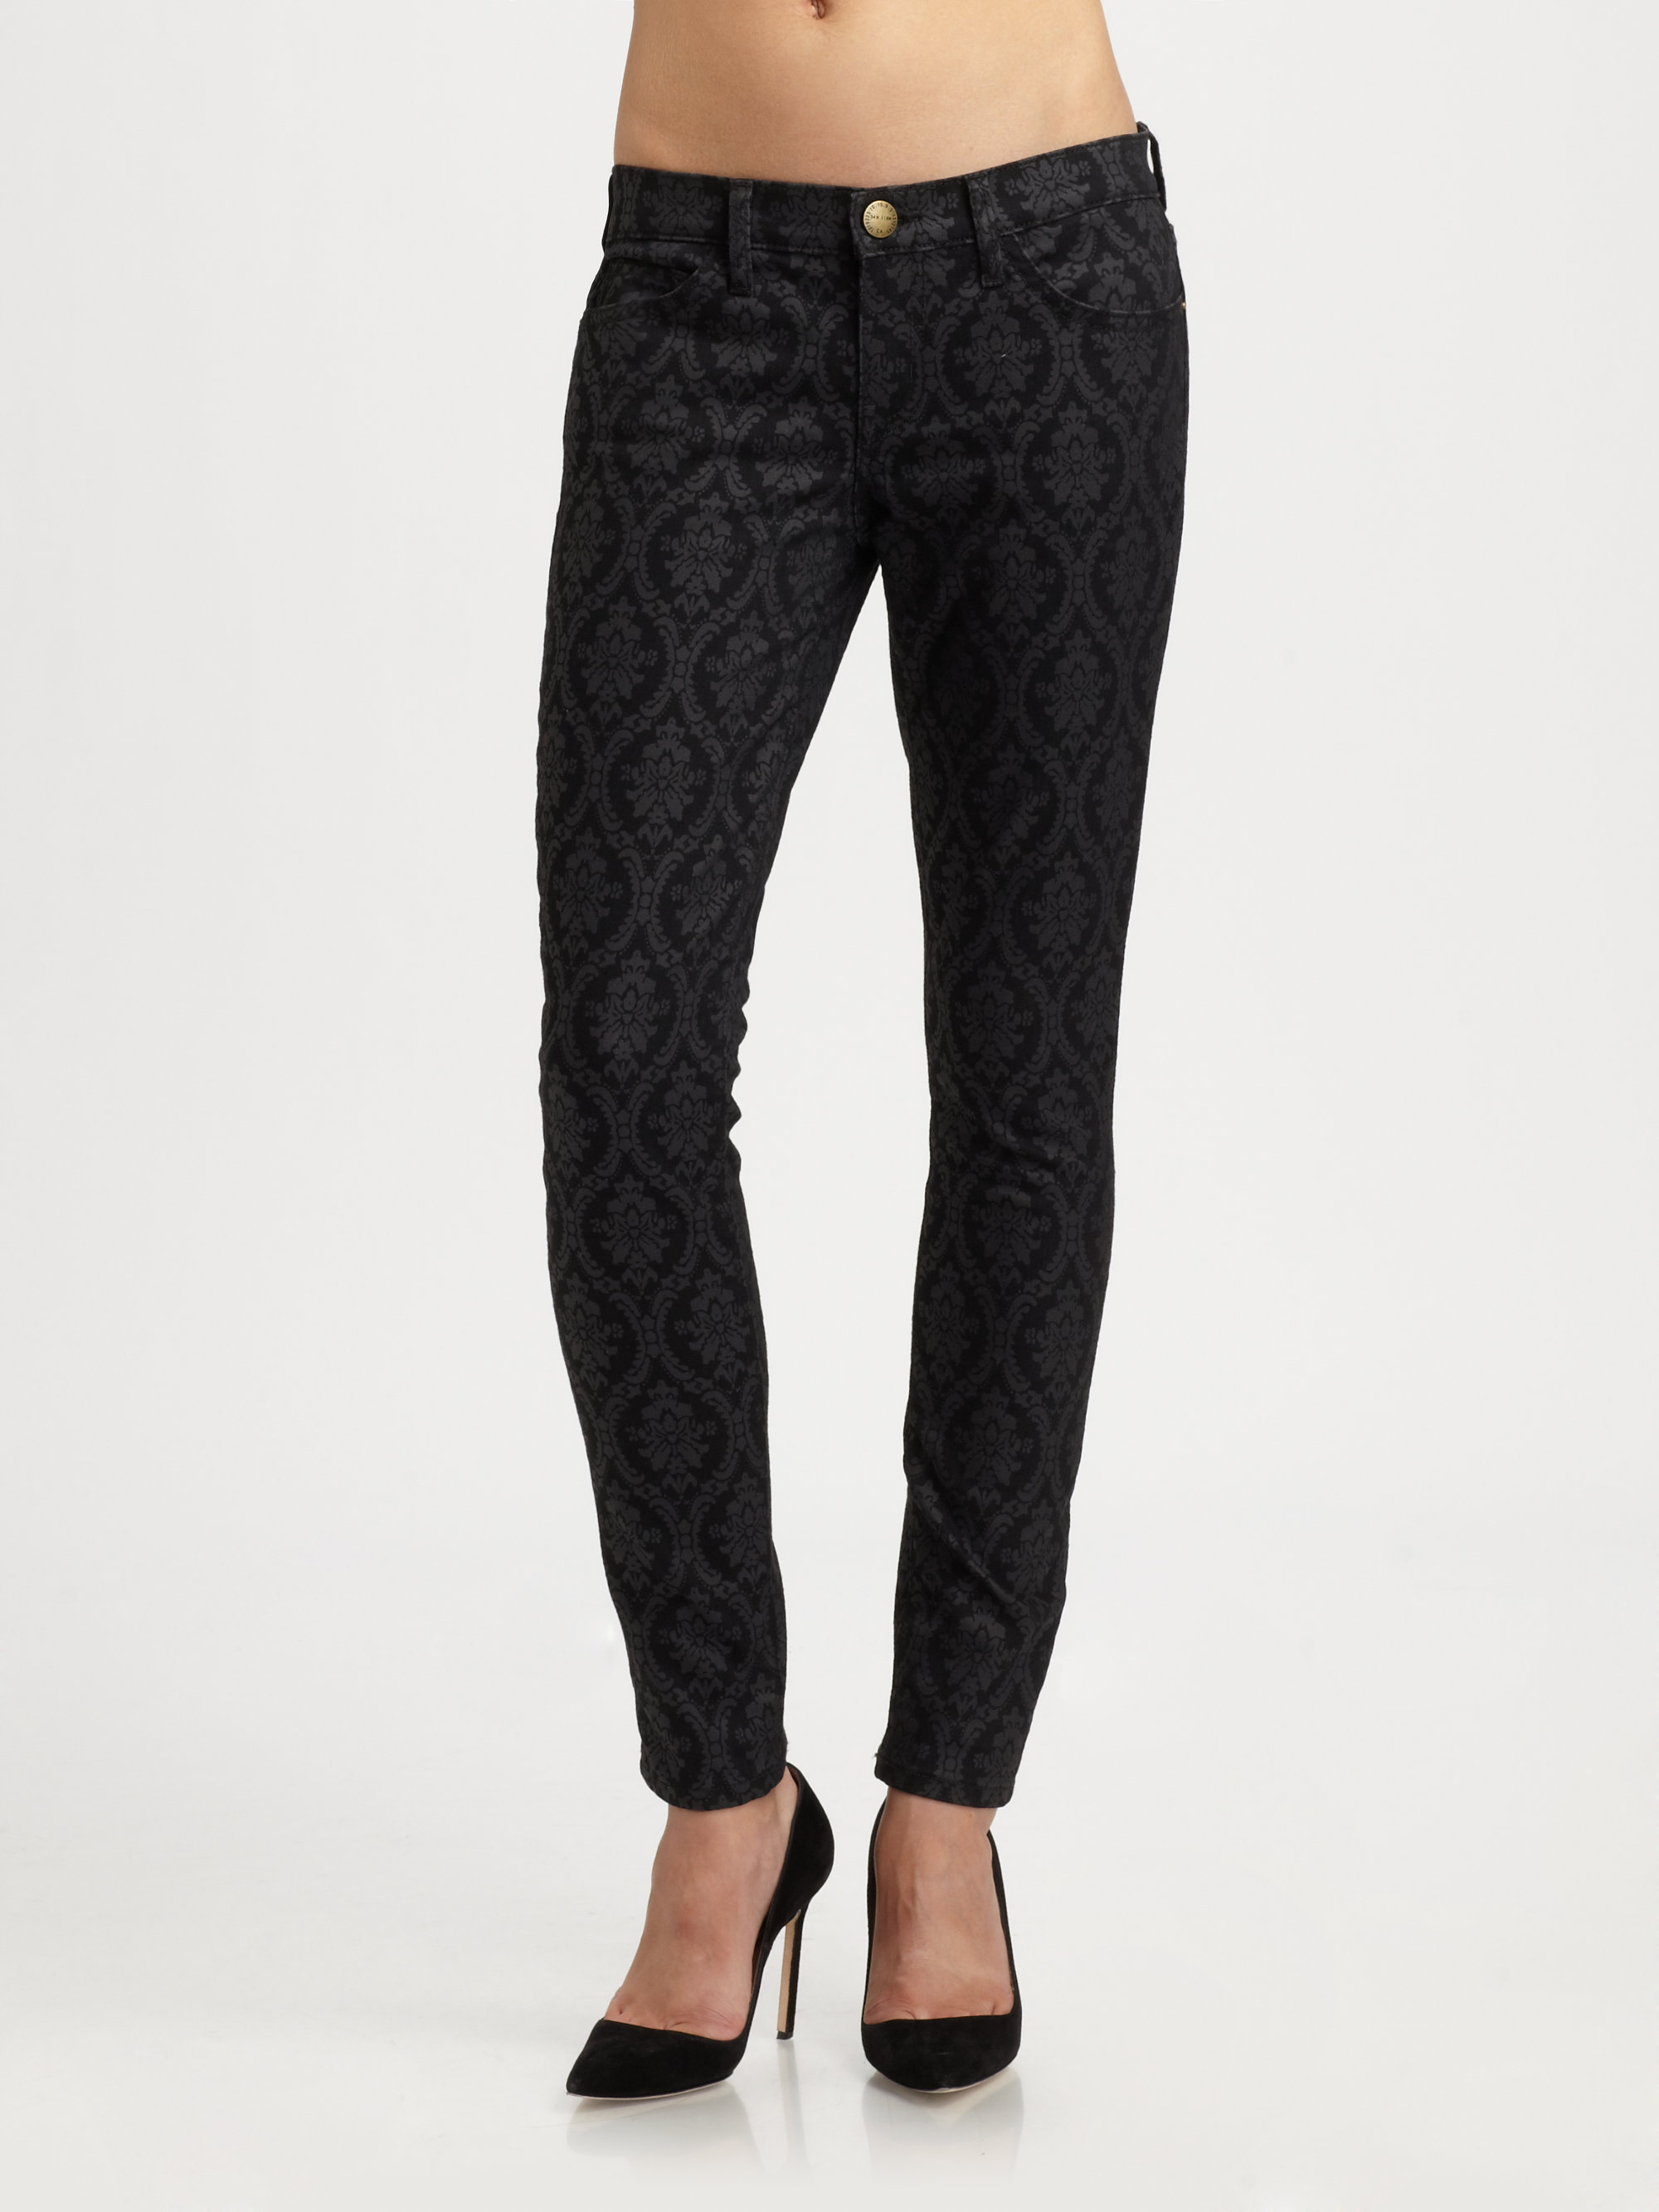 black printed jeans - Jean Yu Beauty